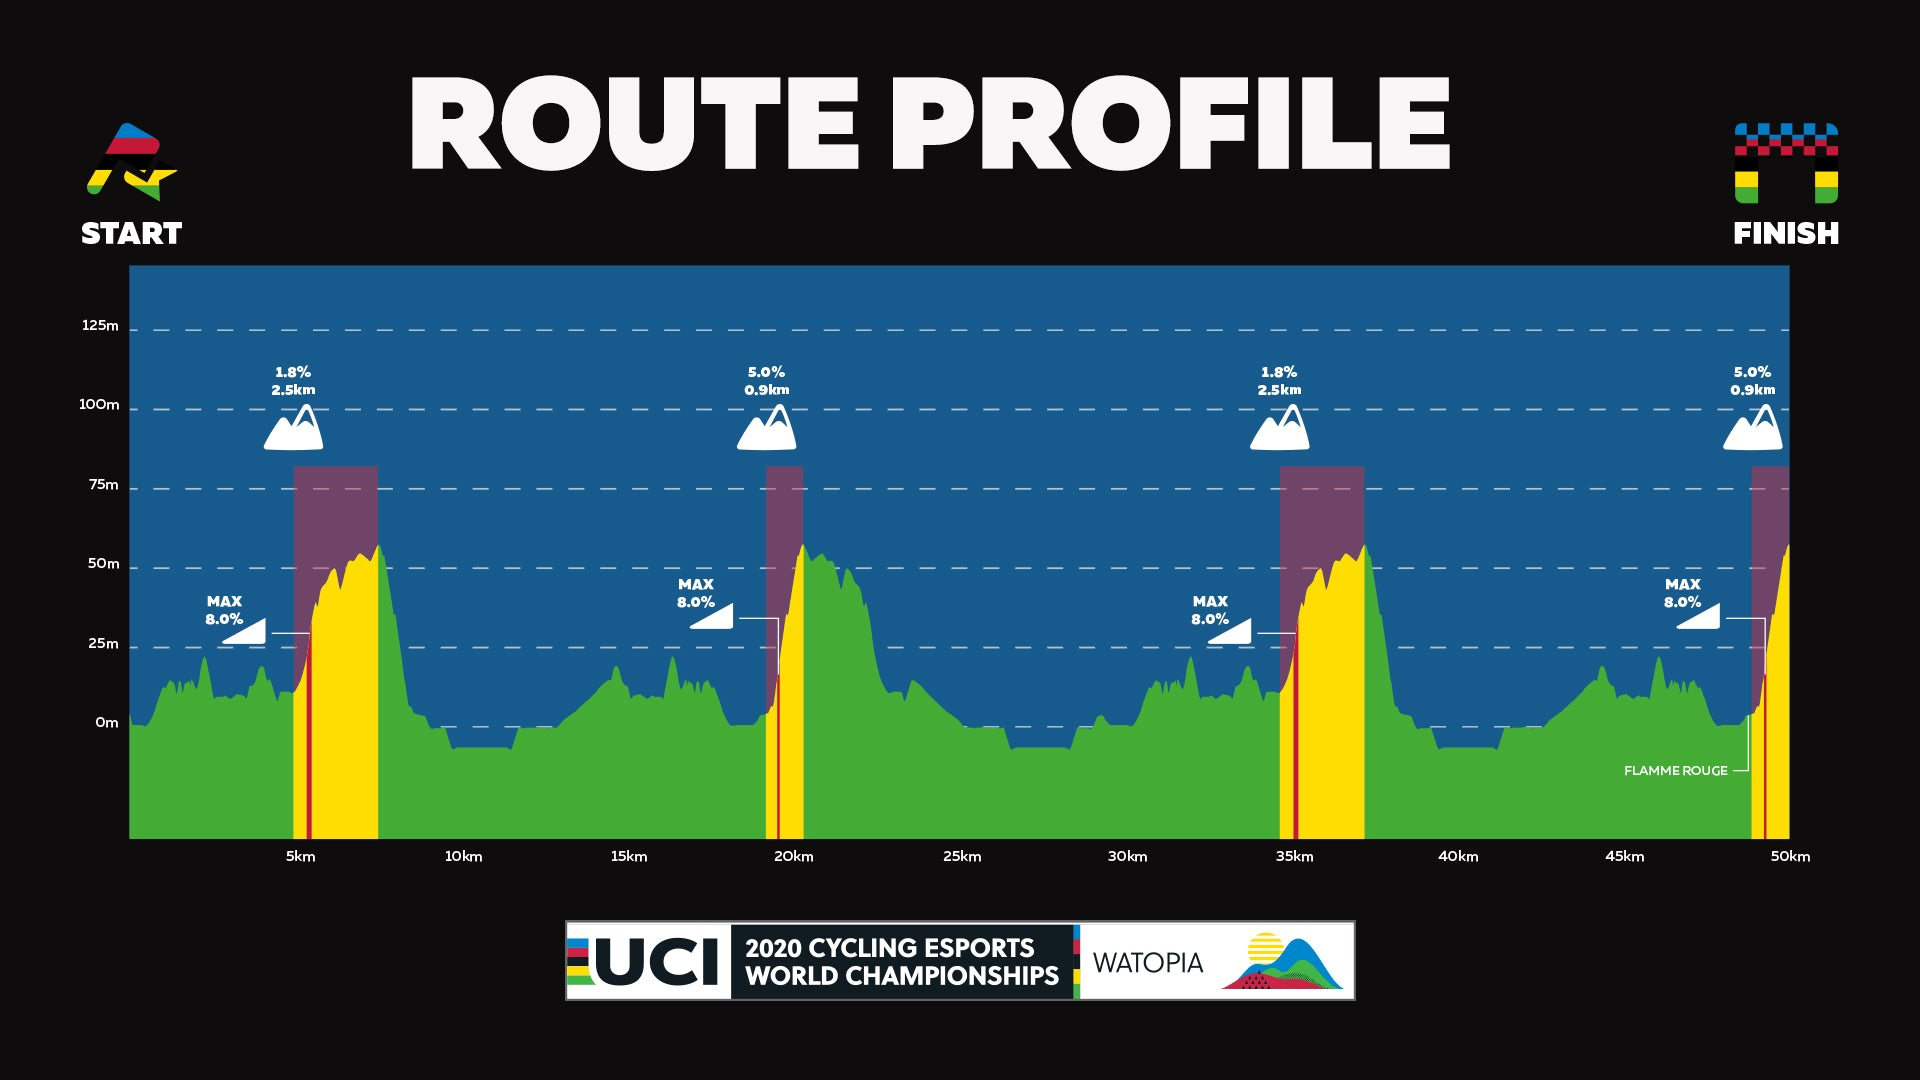 Route profile for Zwift Worlds